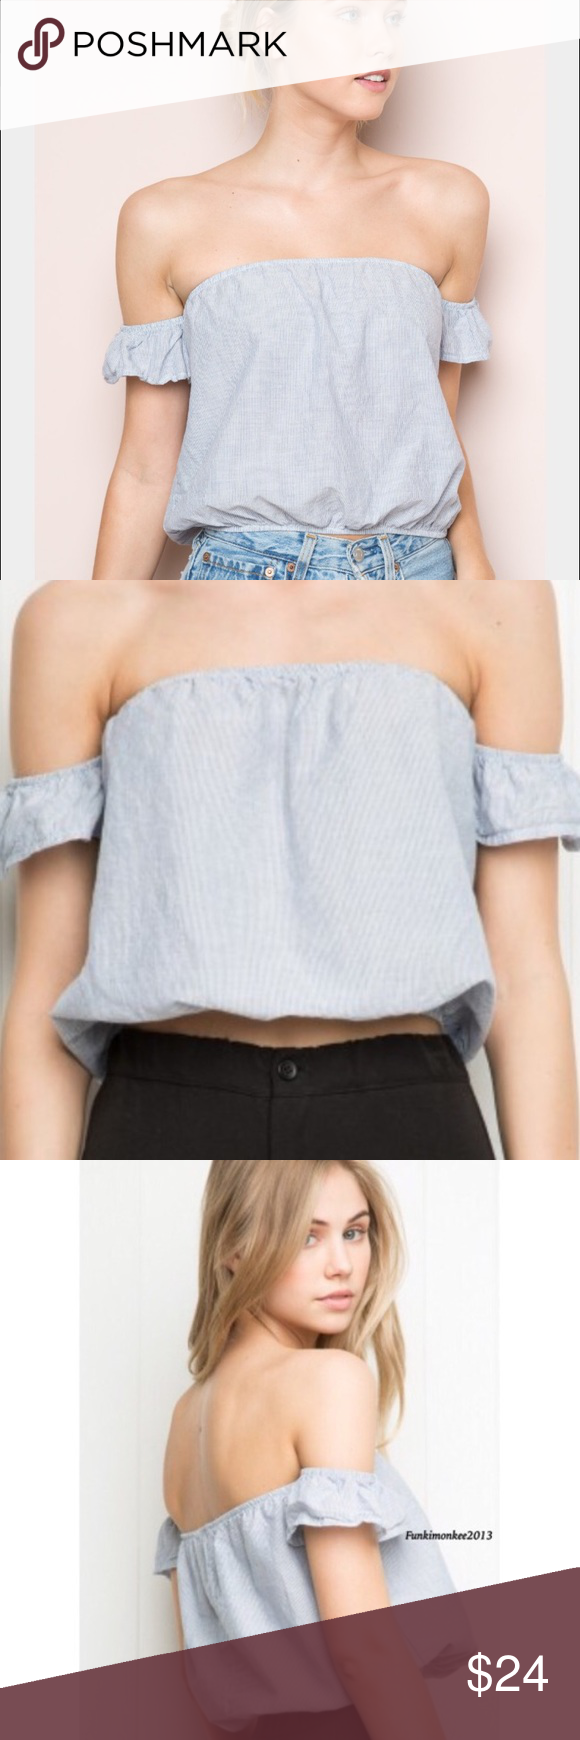 caea0483f2bf8e Brandy Melville beccah stripe off the shoulder top Brandy Melville striped  off the shoulder beccah top. It s scrunched in the top and bottom and has  sleeves ...